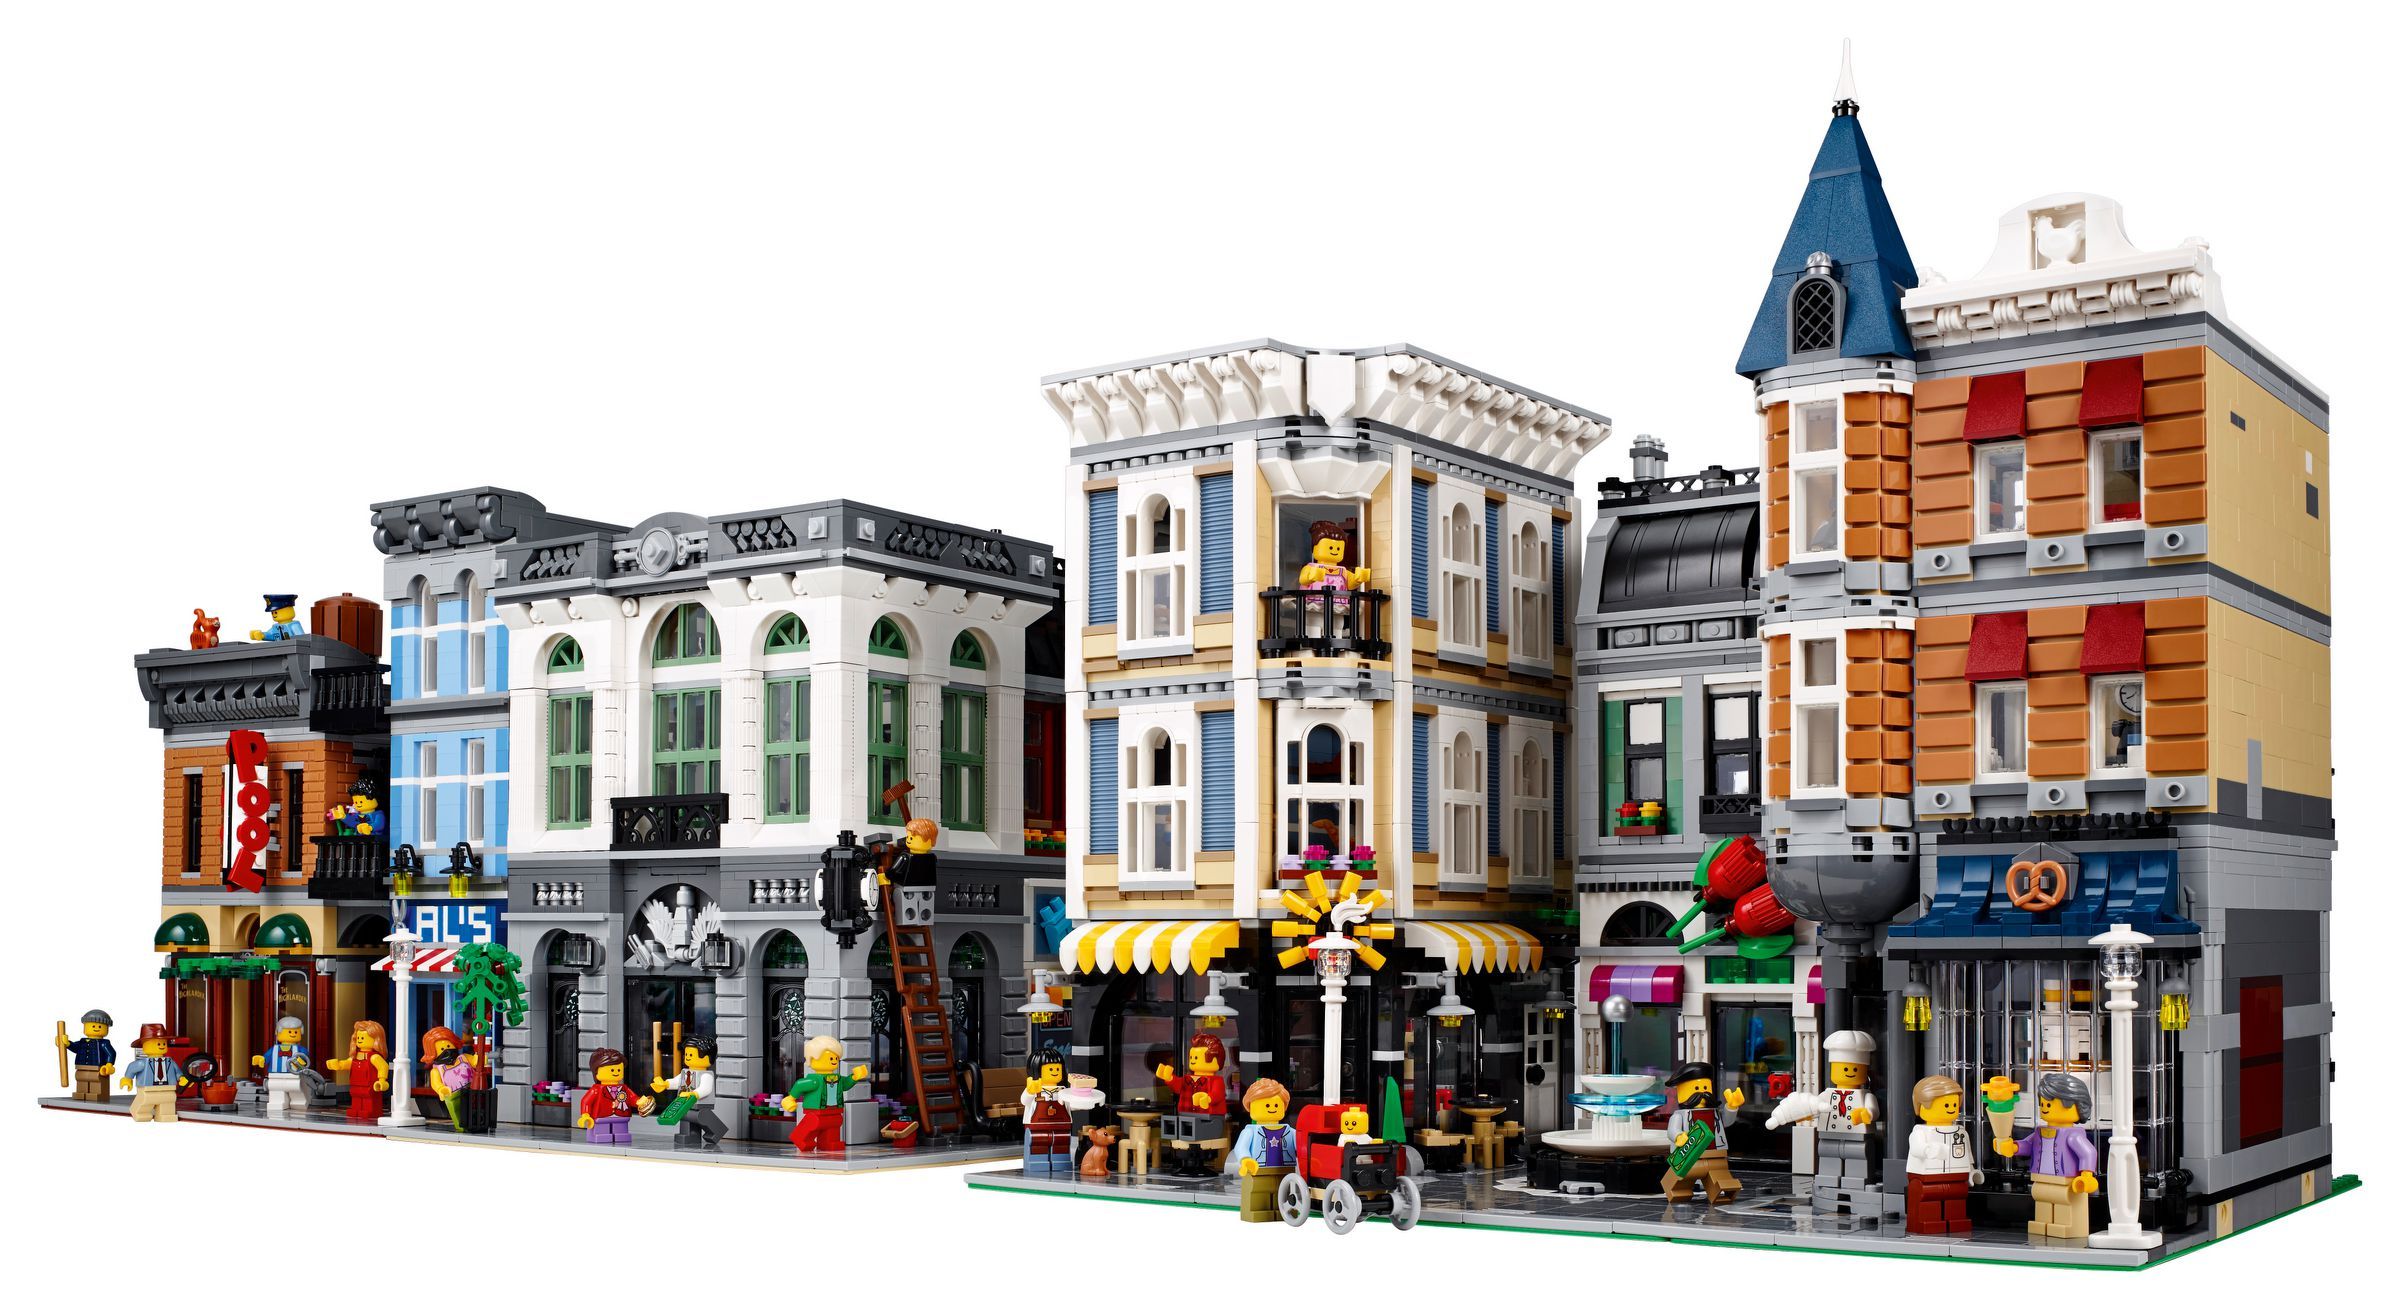 LEGO Advanced Models 10255 Stadtleben (Assembly Square) LEGO_10255_alt4.jpg